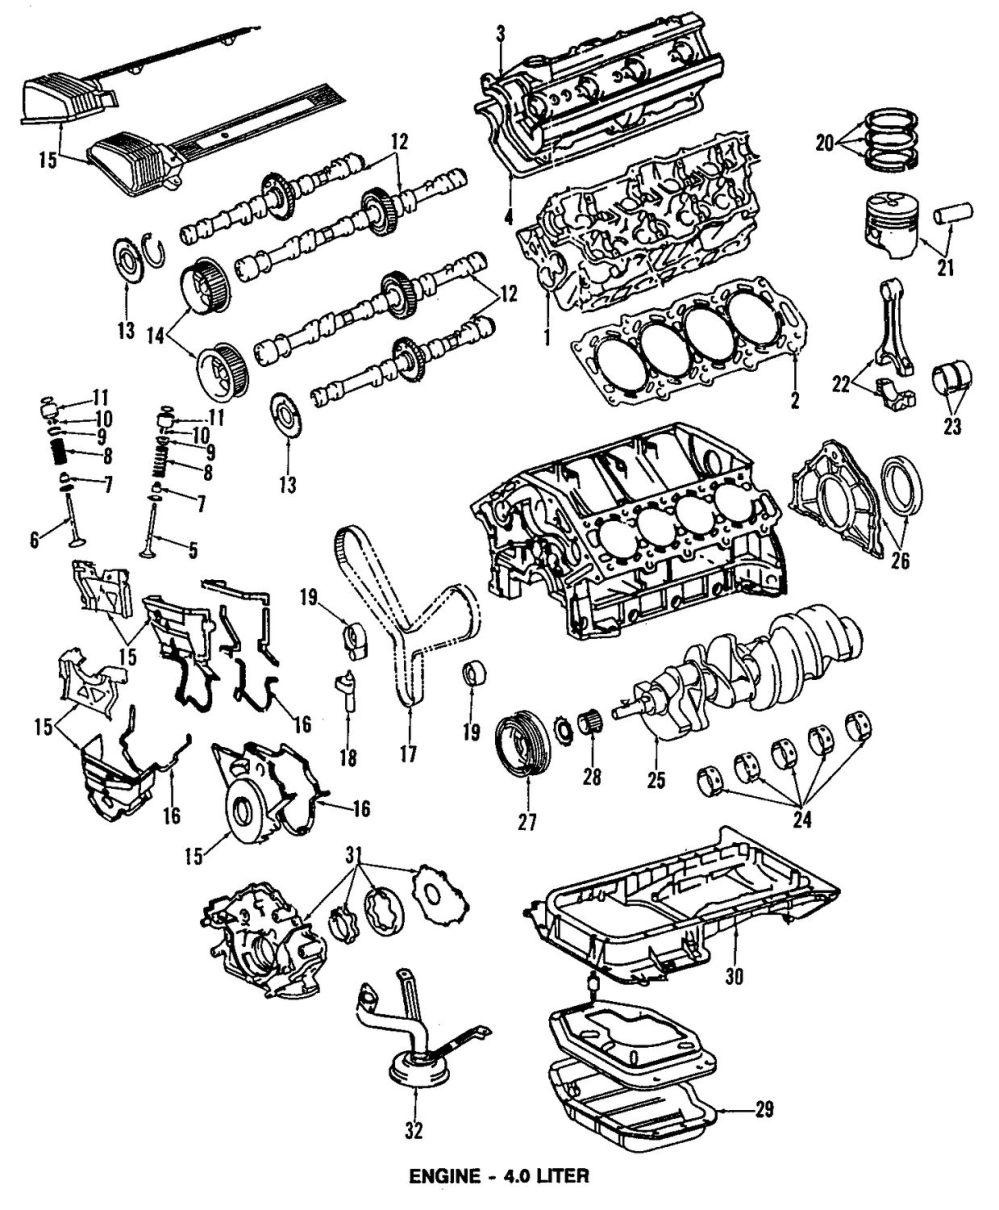 medium resolution of 2001 lexus is300 engine diagram wiring diagram schematics 2000 lexus rx300 engine diagram gs400 engine diagram